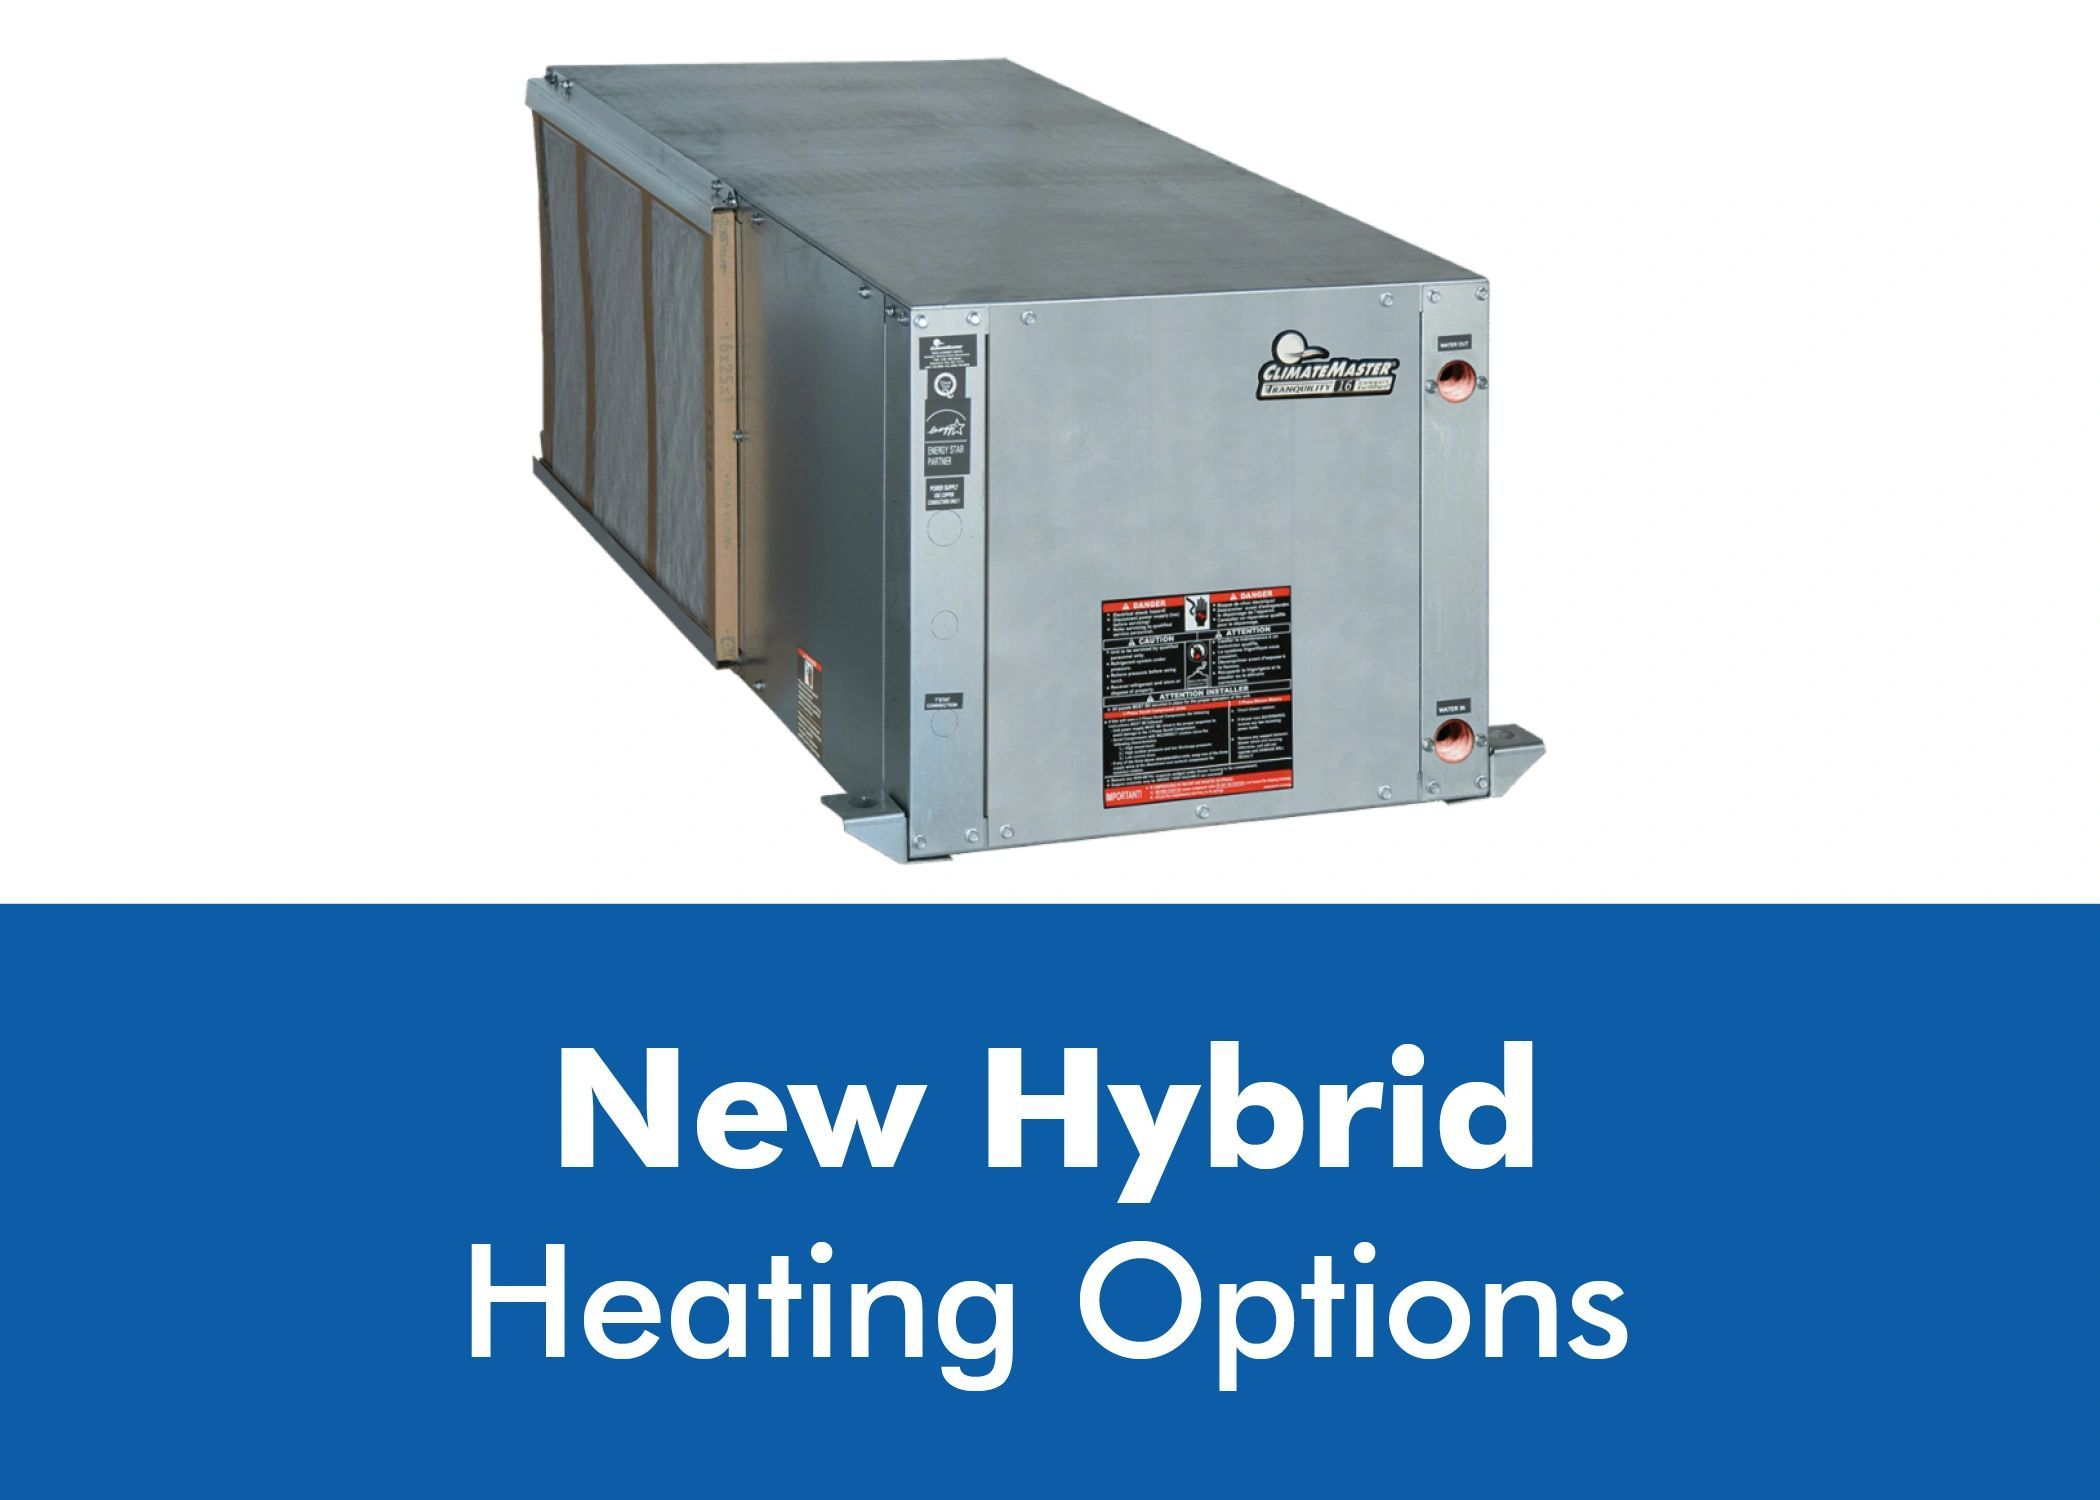 New Hybrid Heating Options For Tr Horizontal Hybrid Hydronic